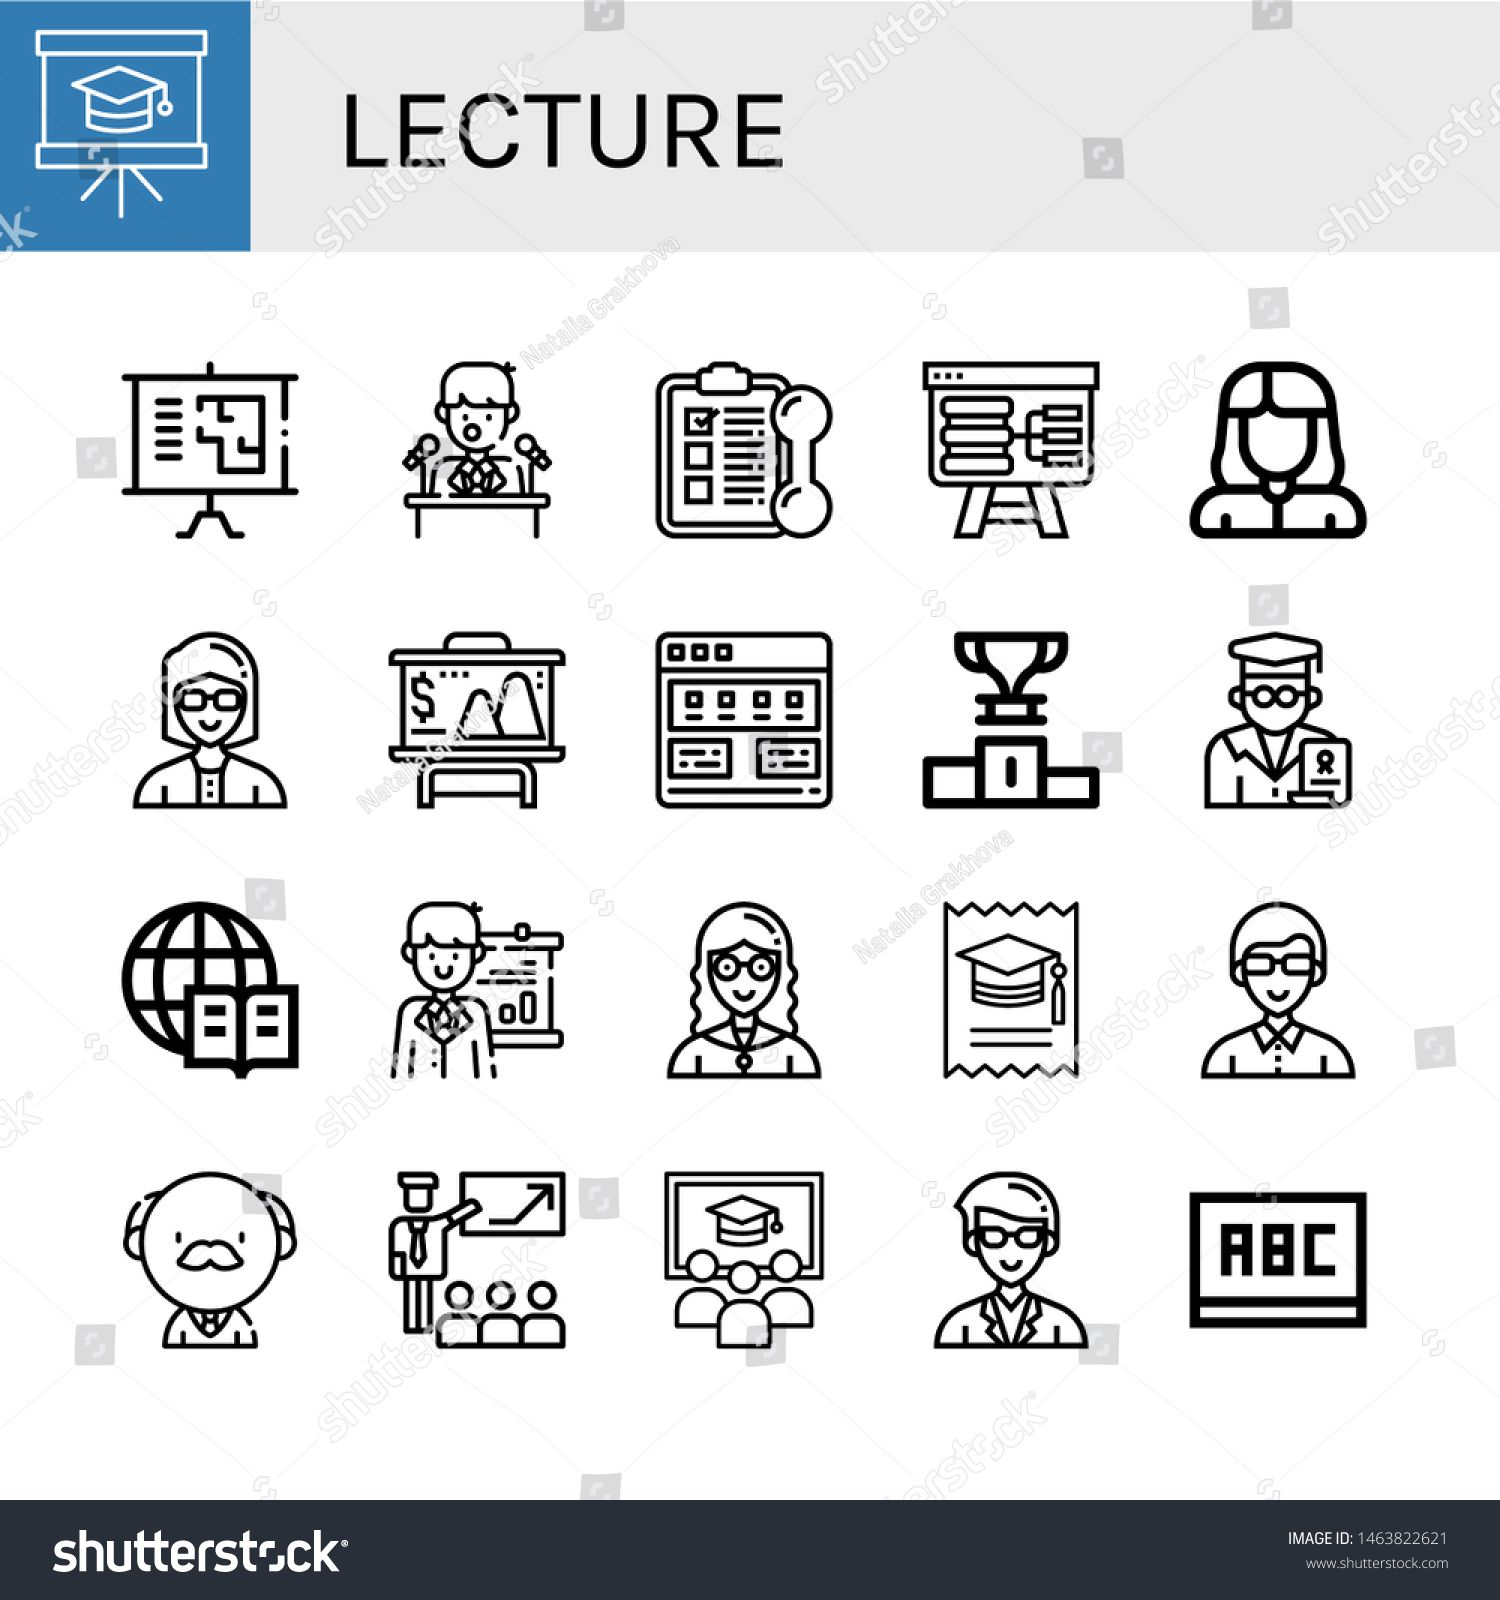 Set Of Lecture Icons Such As Presentation Press Conference